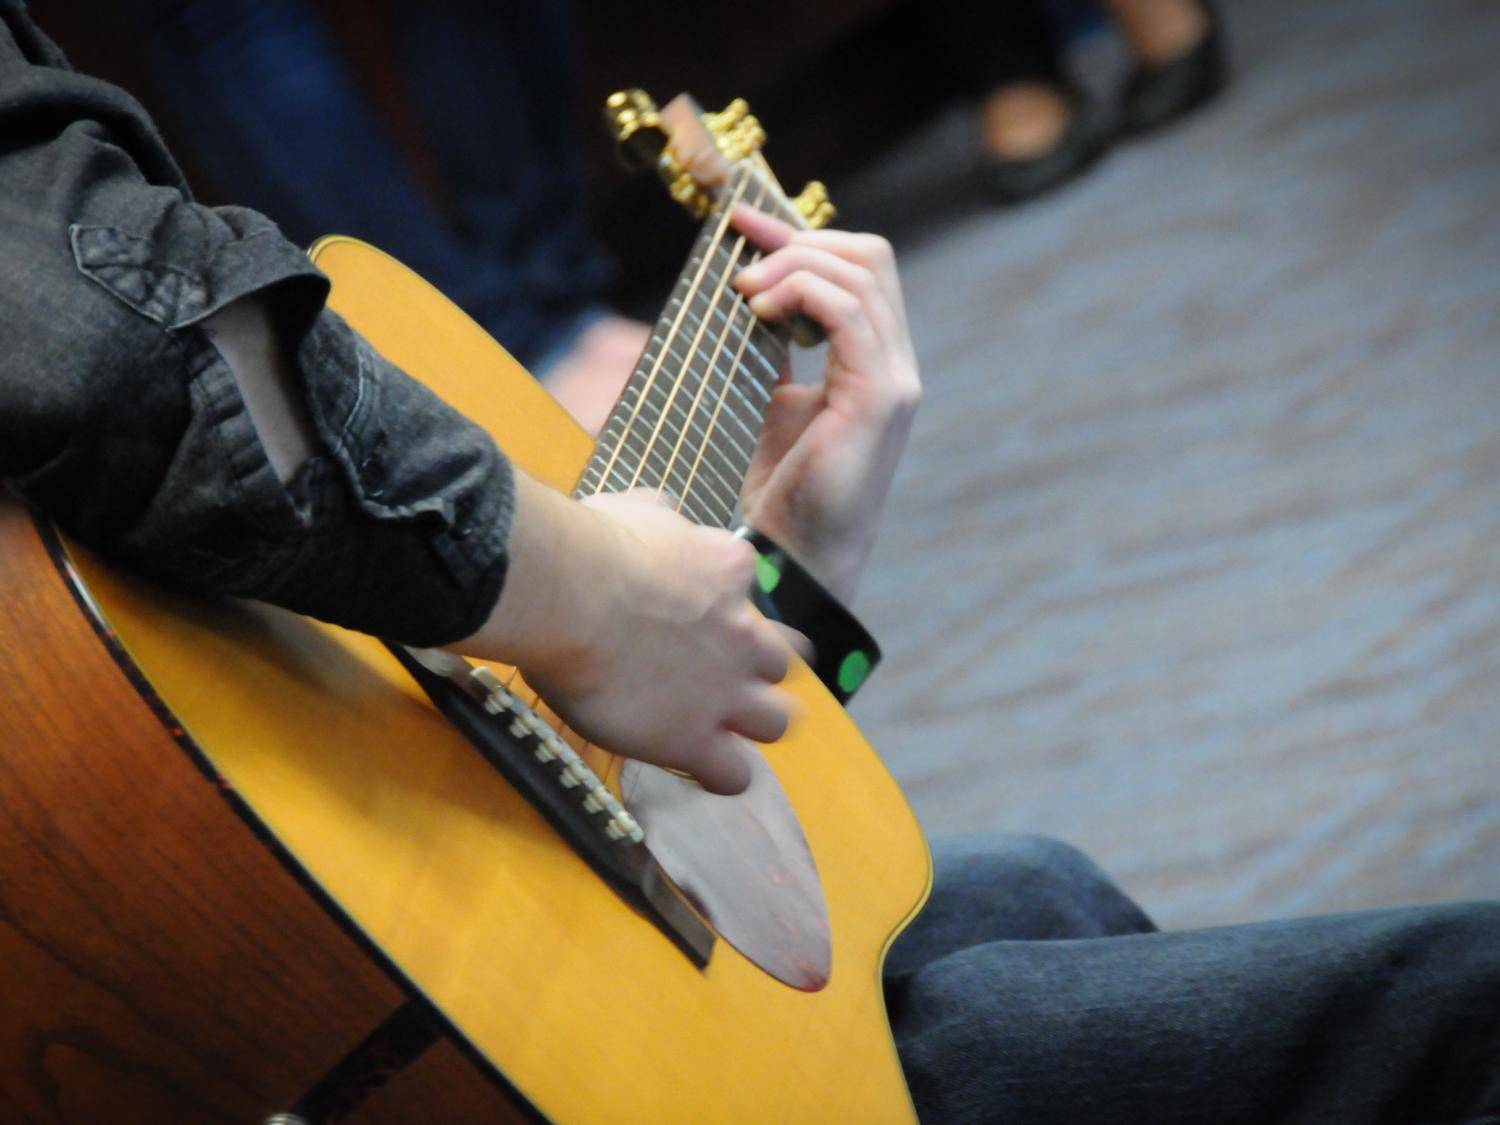 A Lehigh Valley student plays guitar during a campus performance.